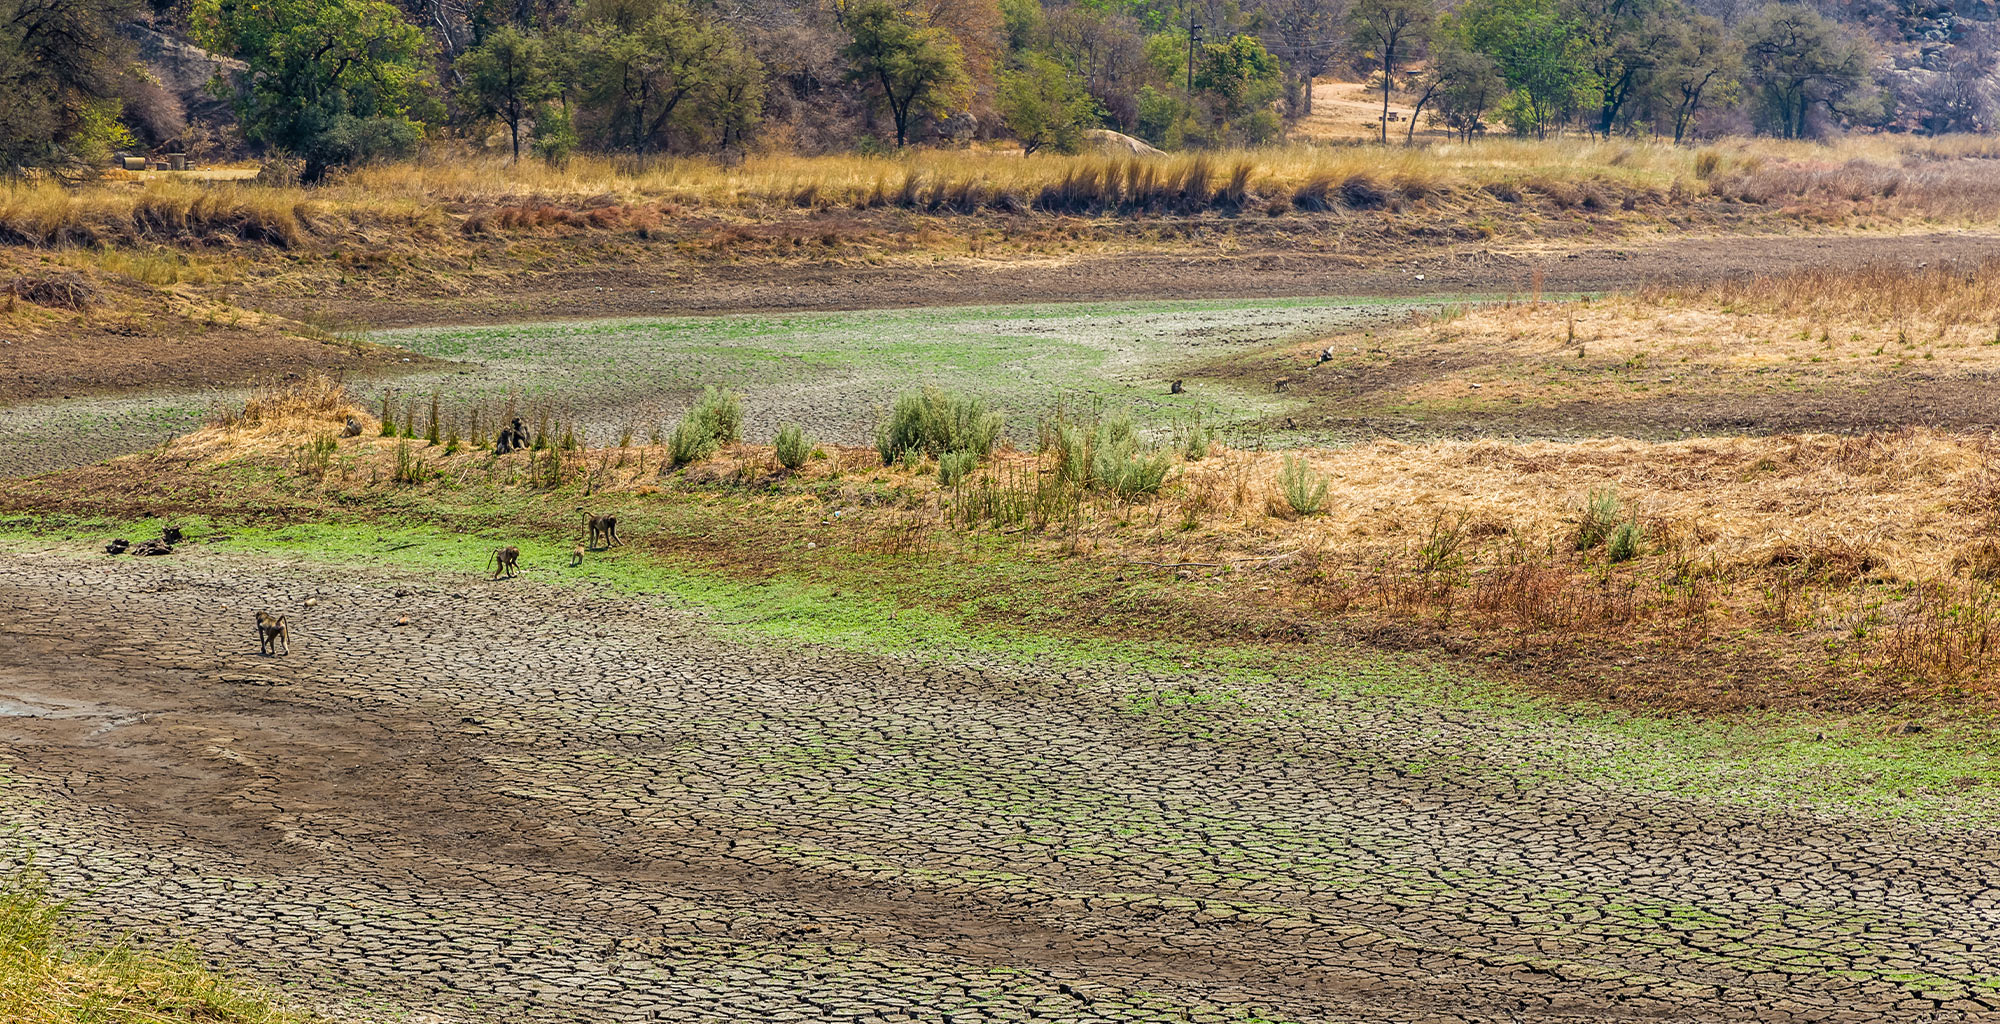 Zimbabwean Farmers Revive Stagnant Farms Through Agroecology